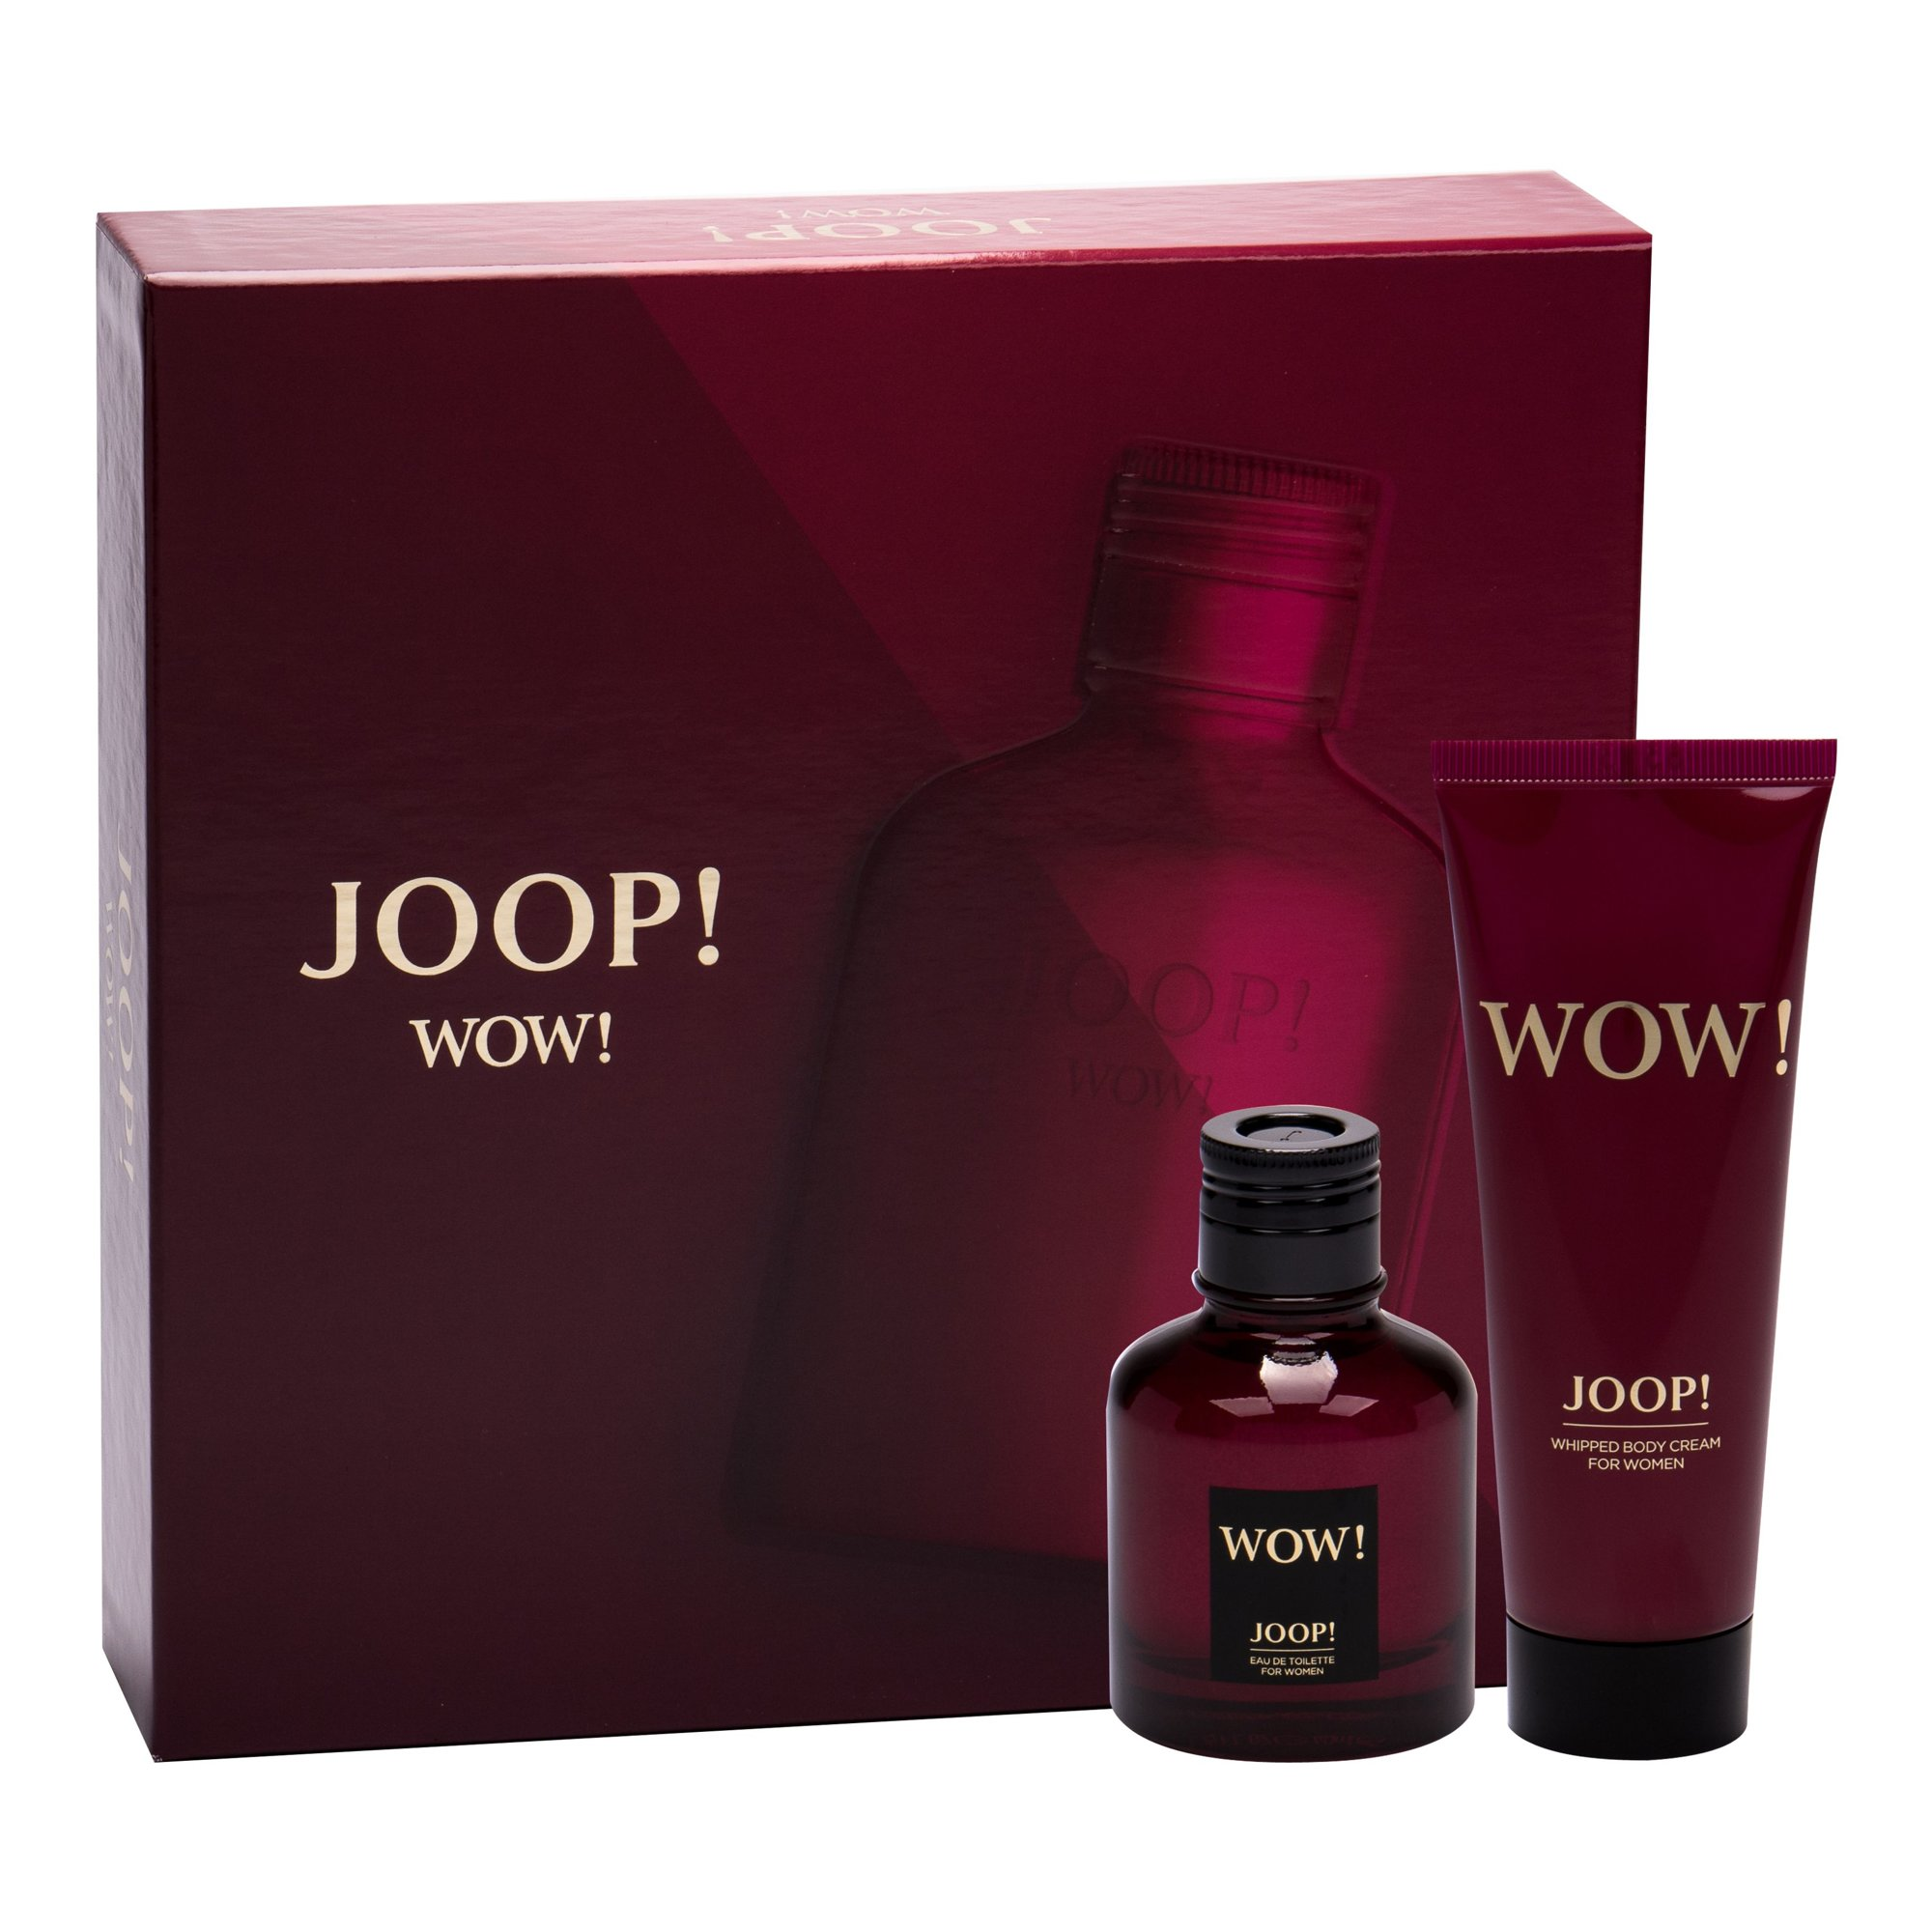 JOOP! Wow Eau de Toilette 40ml